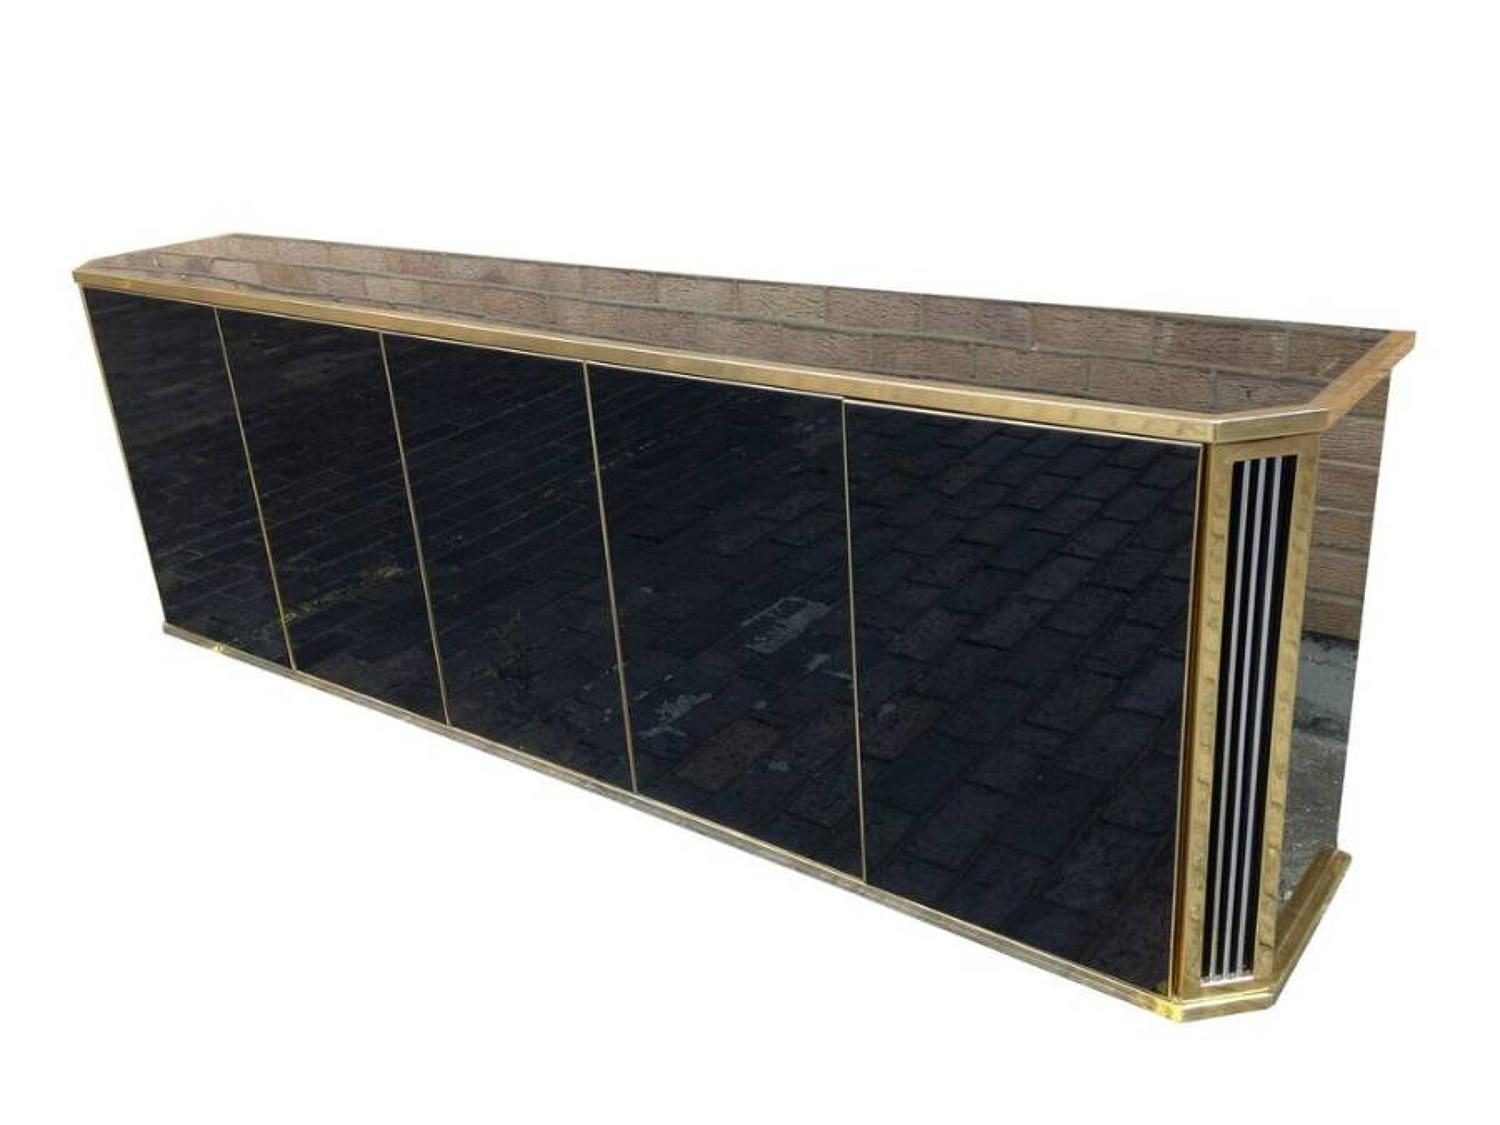 1970s black glass and brass credenza